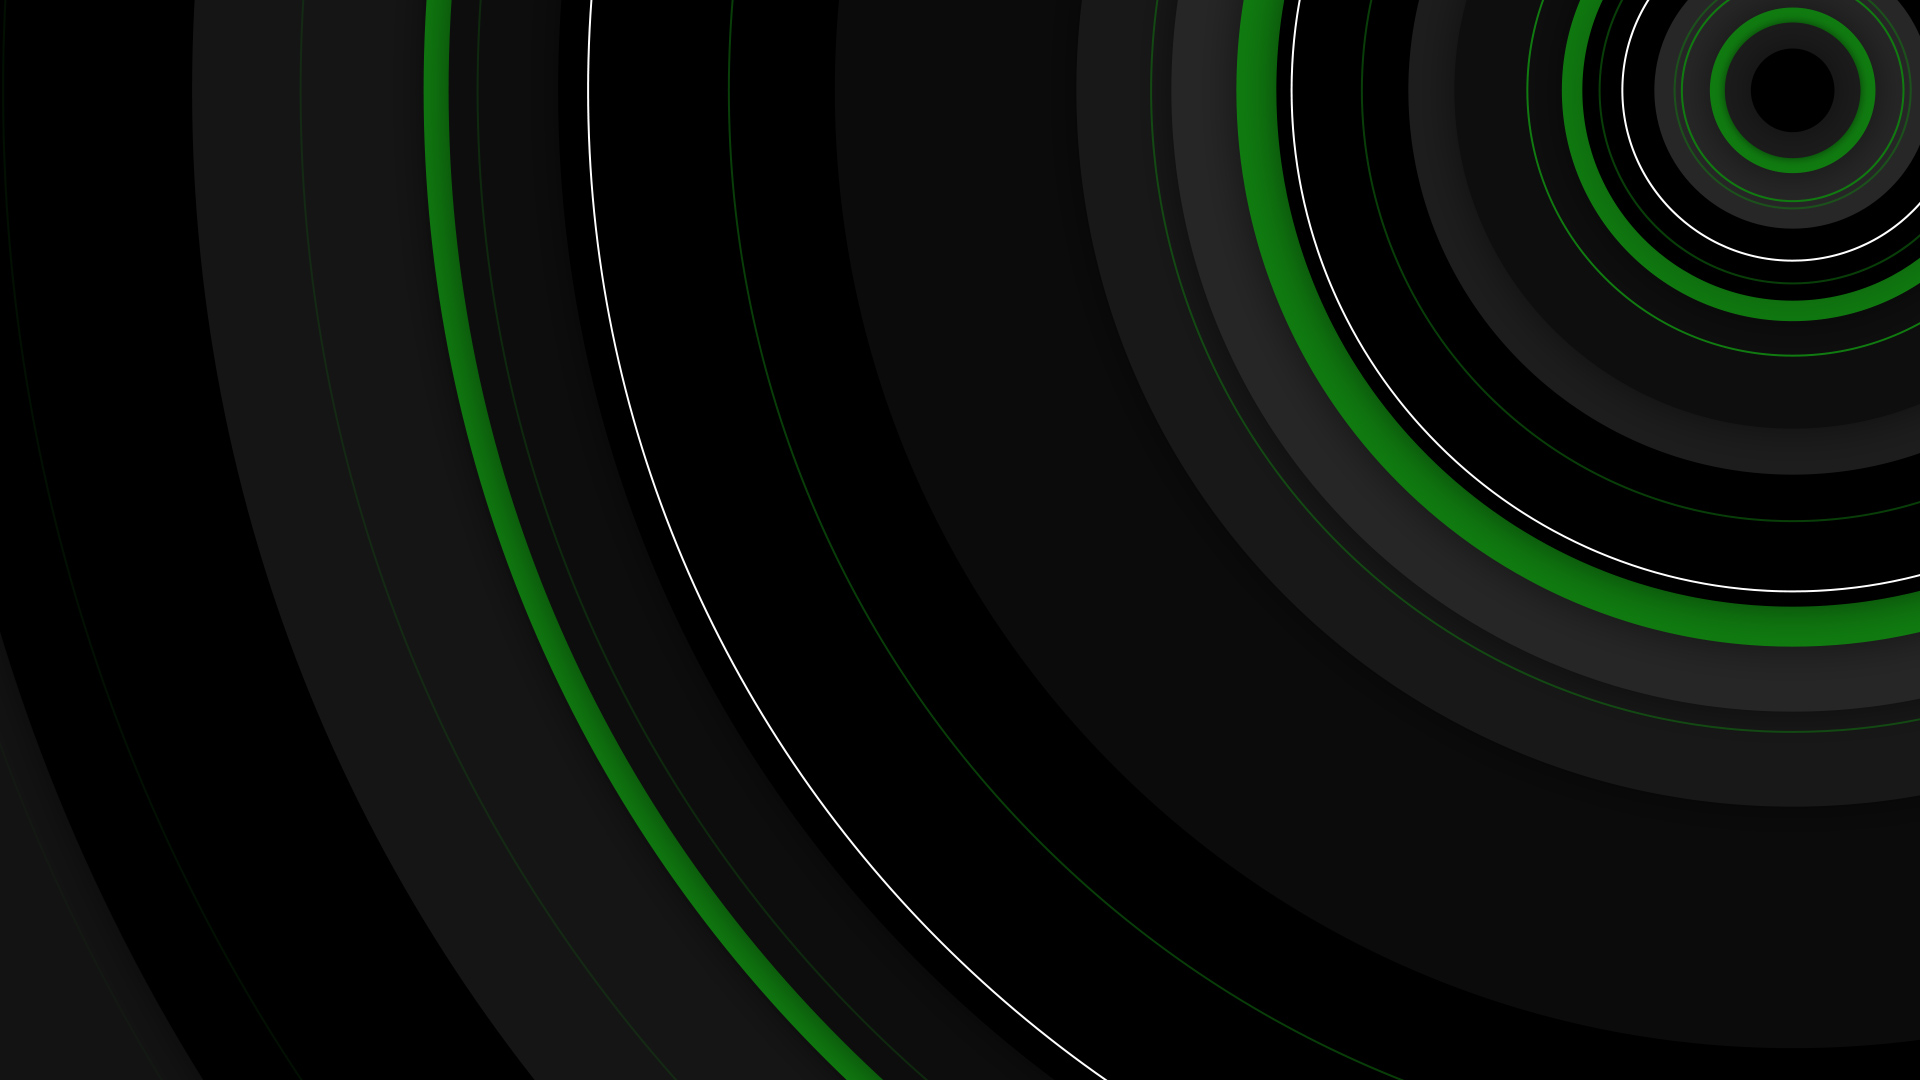 About >> x1bg-circles-black-green-trim | Martin Crownover